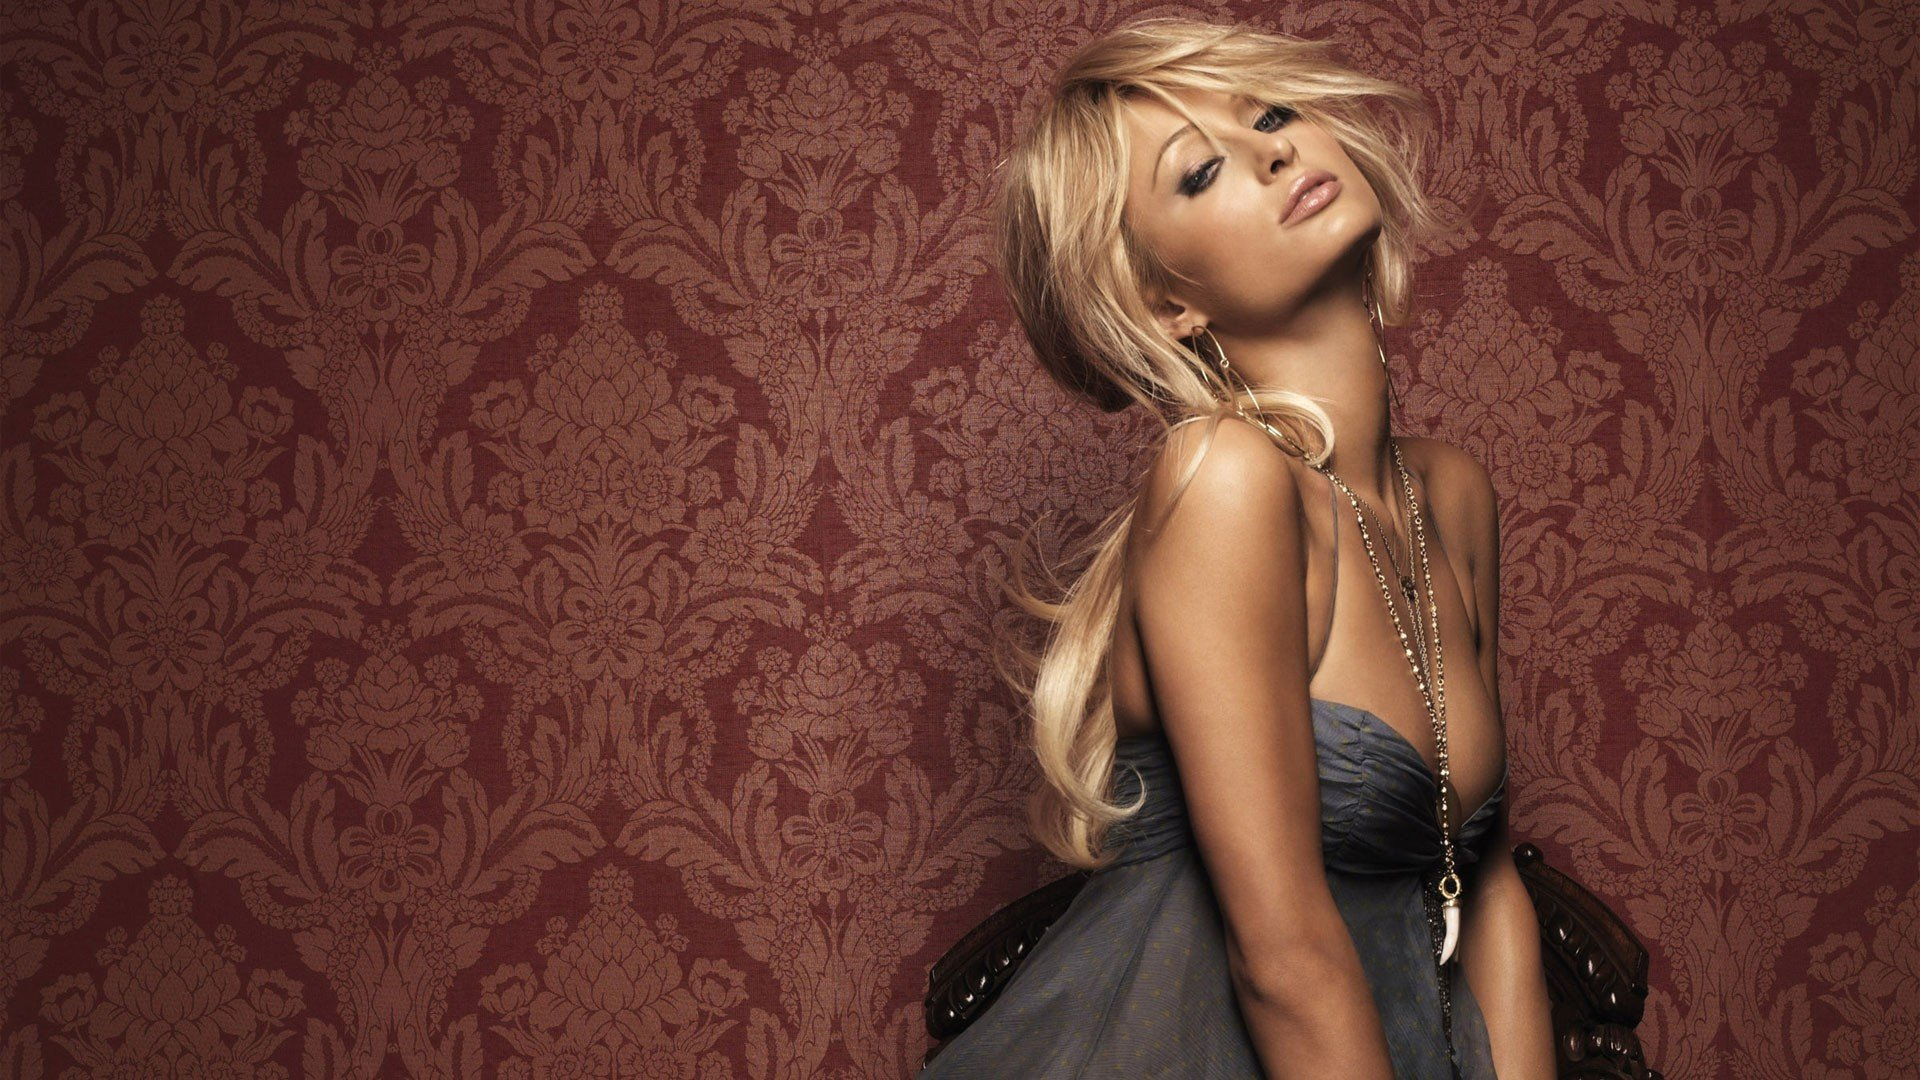 Awesome Paris Hilton free wallpaper ID:34617 for full hd 1920x1080 desktop